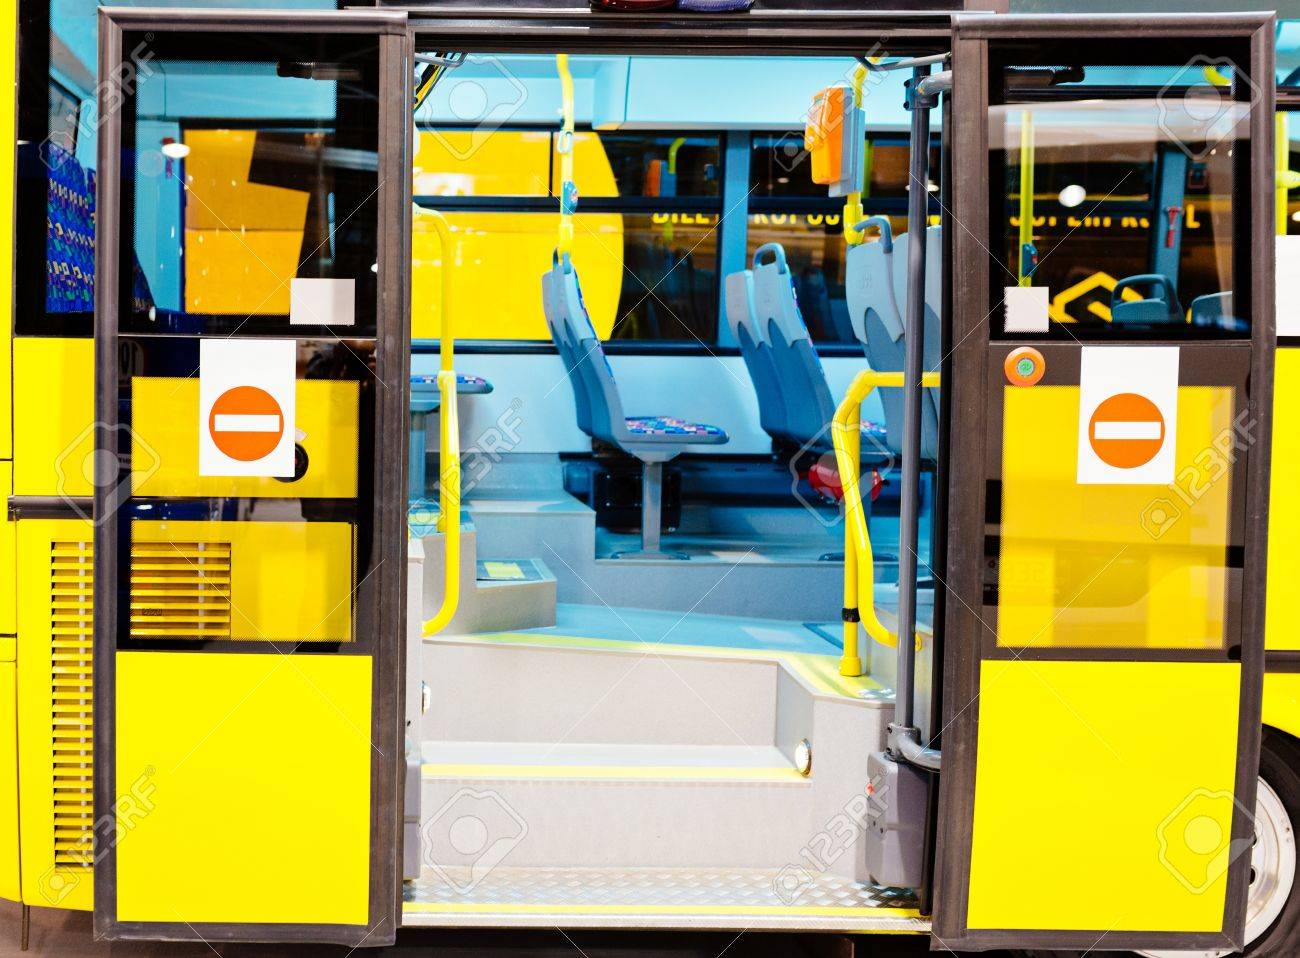 Modern city bus entrance with open doors. Public transport Stock Photo - 77495439 & Modern City Bus Entrance With Open Doors. Public Transport Stock ...